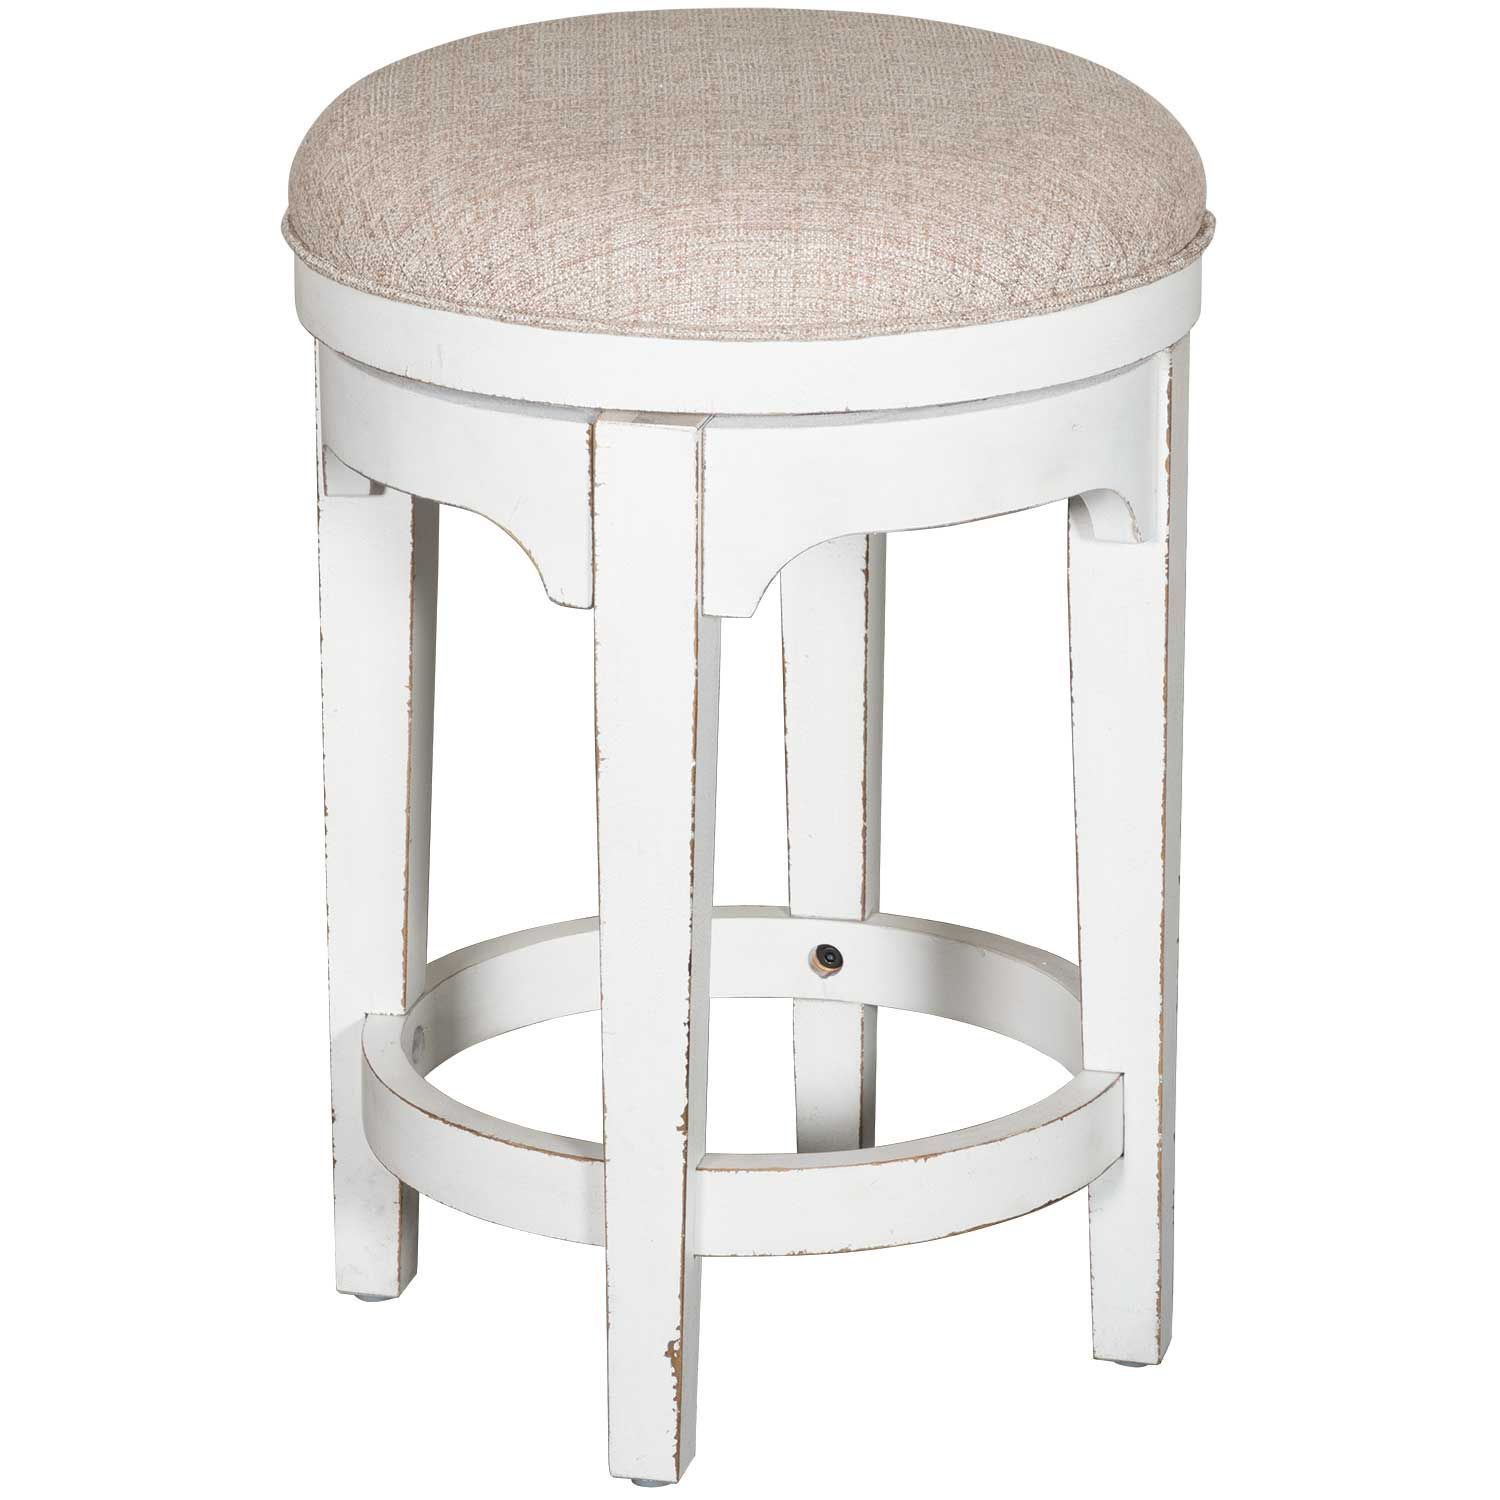 Magnolia Manor Console Swivel Barstool | 244 Ot9003 | Liberty With Manor Grey Swivel Chairs (Image 13 of 25)